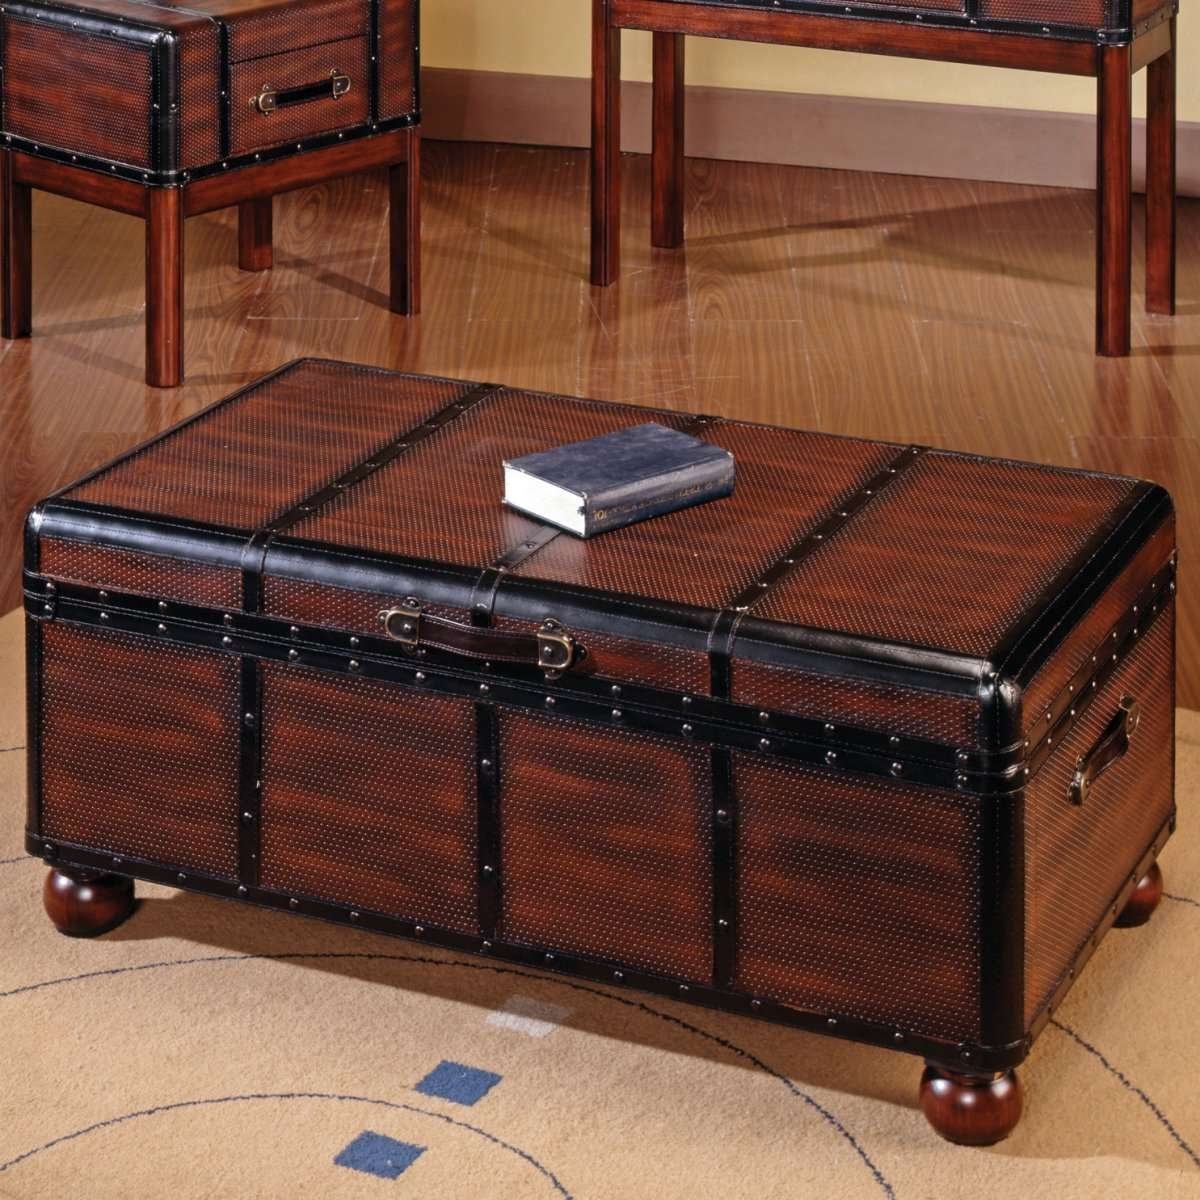 Popular Dark Wood Chest Coffee Tables Intended For Coffee Table : Ottoman Trunk Coffee Table Treasure Chest Side (View 17 of 20)